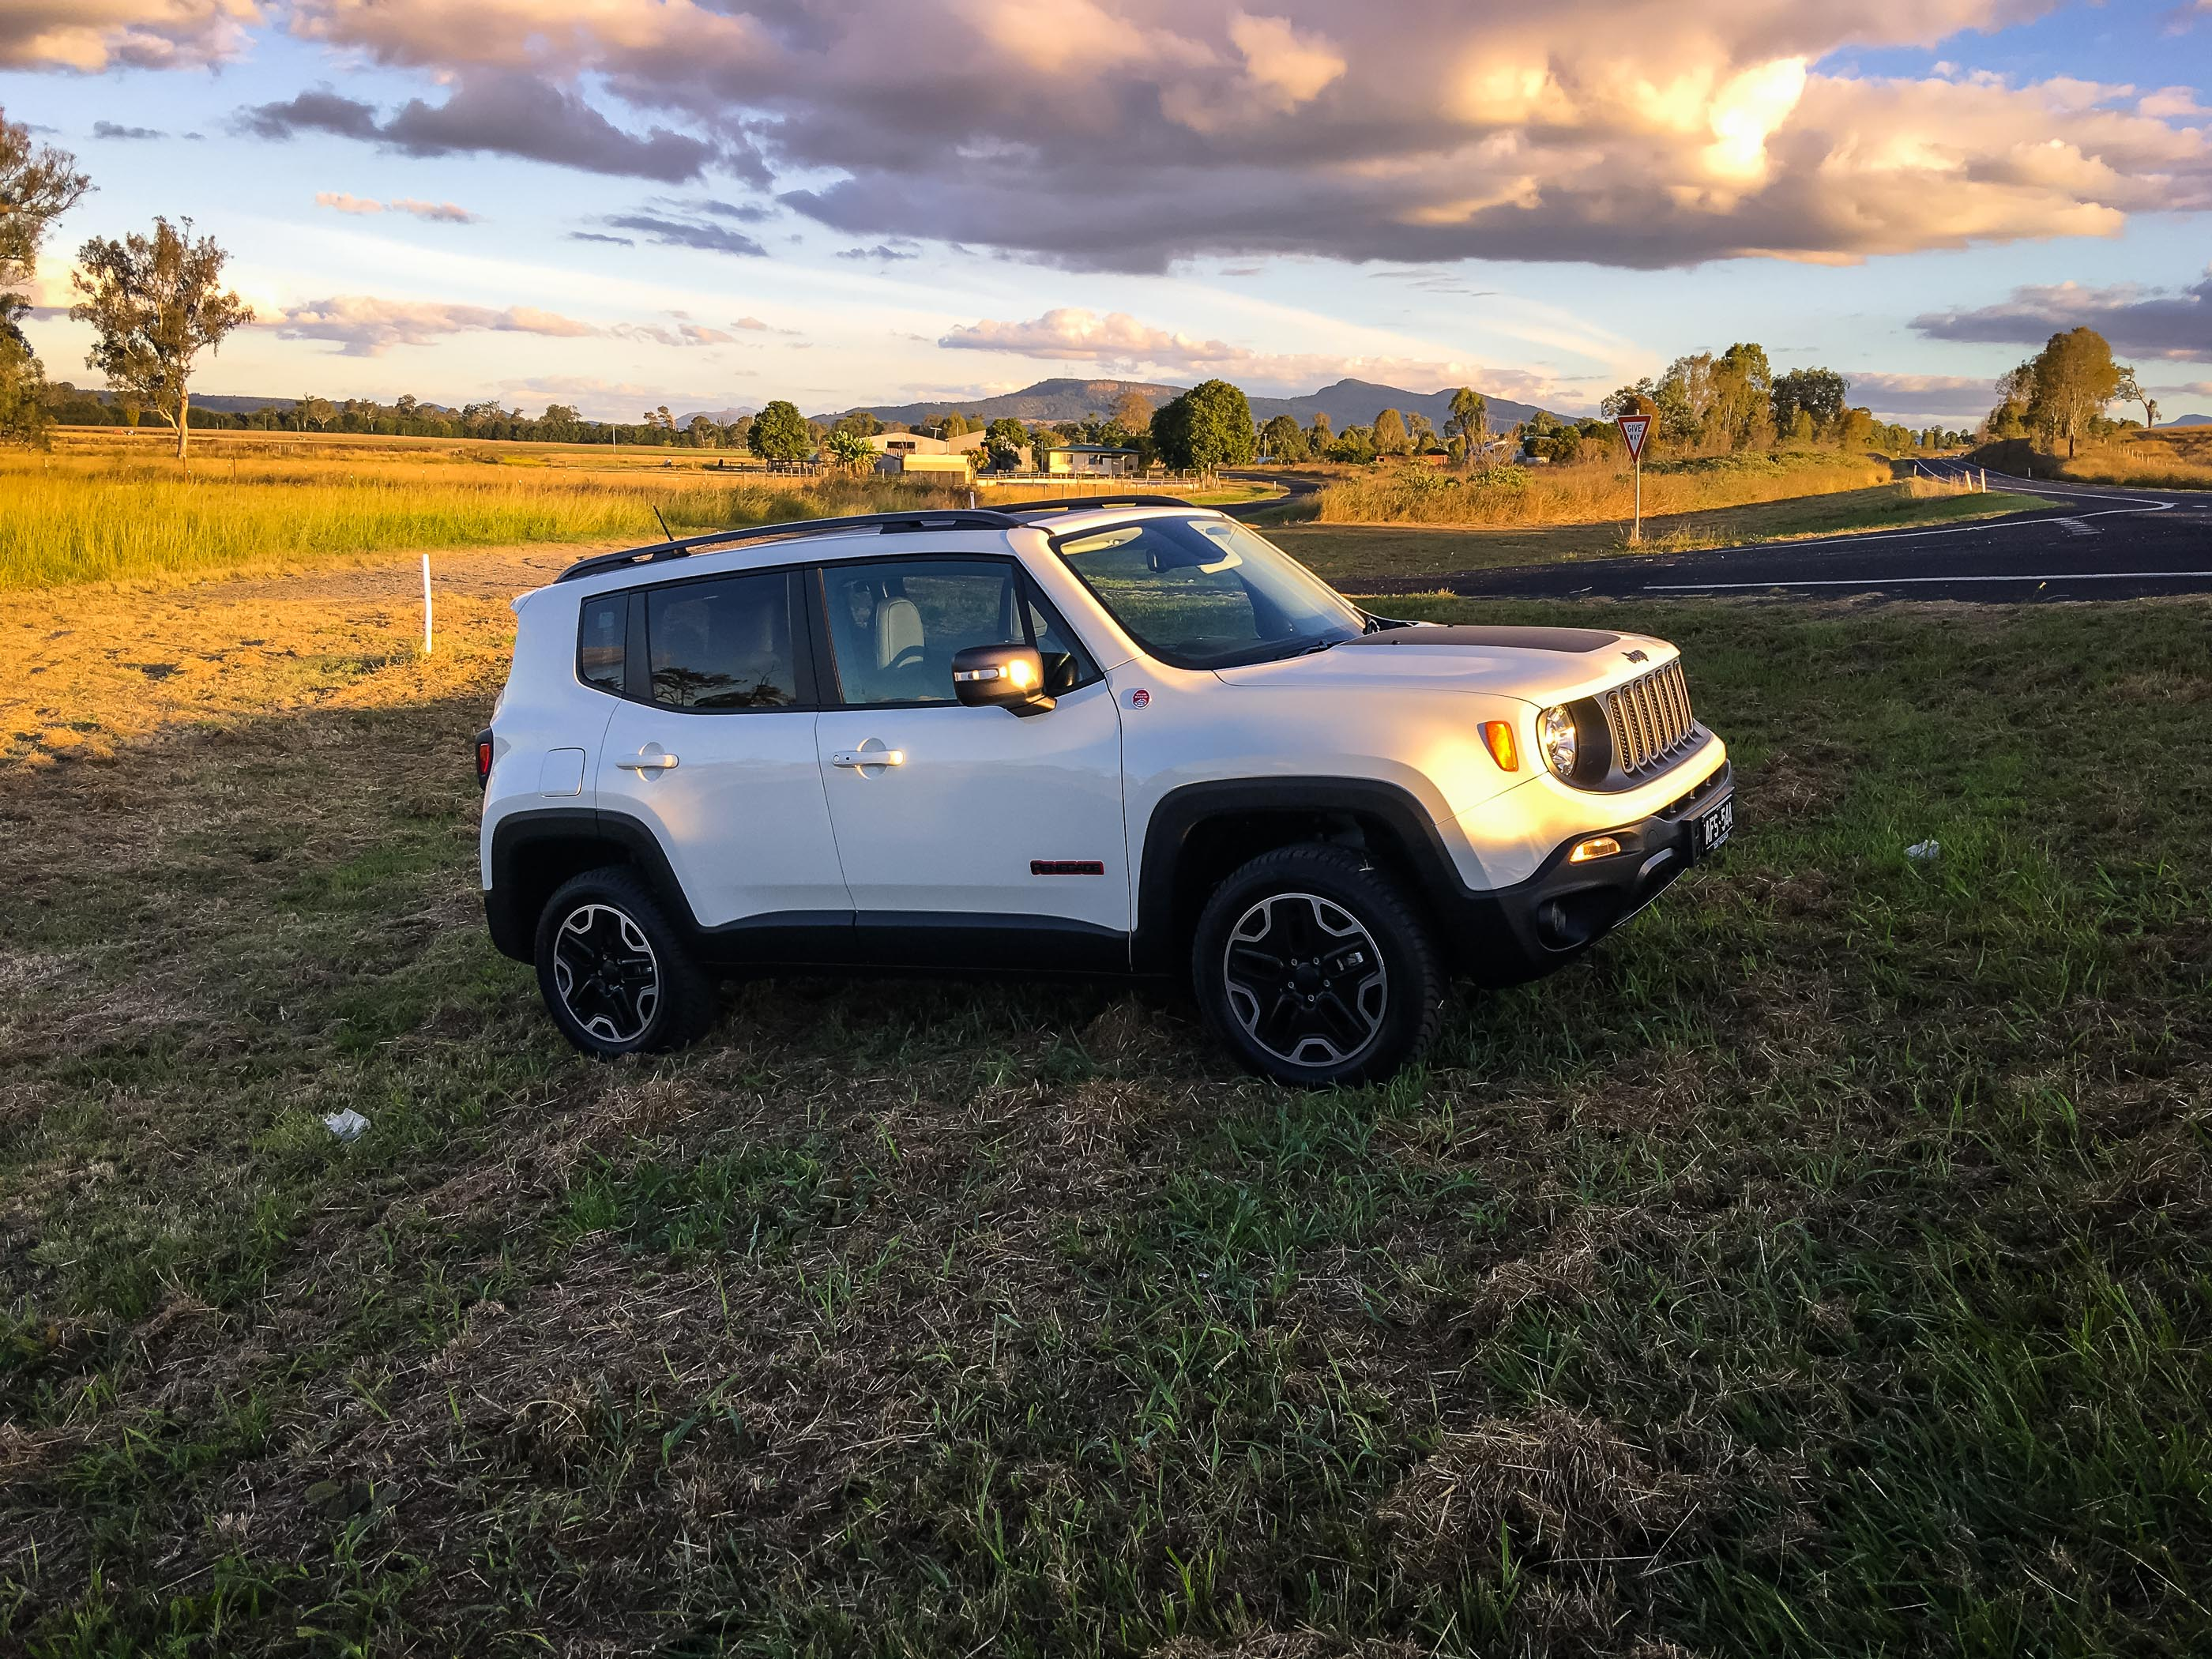 Jeep Renegade Models >> 2016 Jeep Renegade Trailhawk Review - photos | CarAdvice